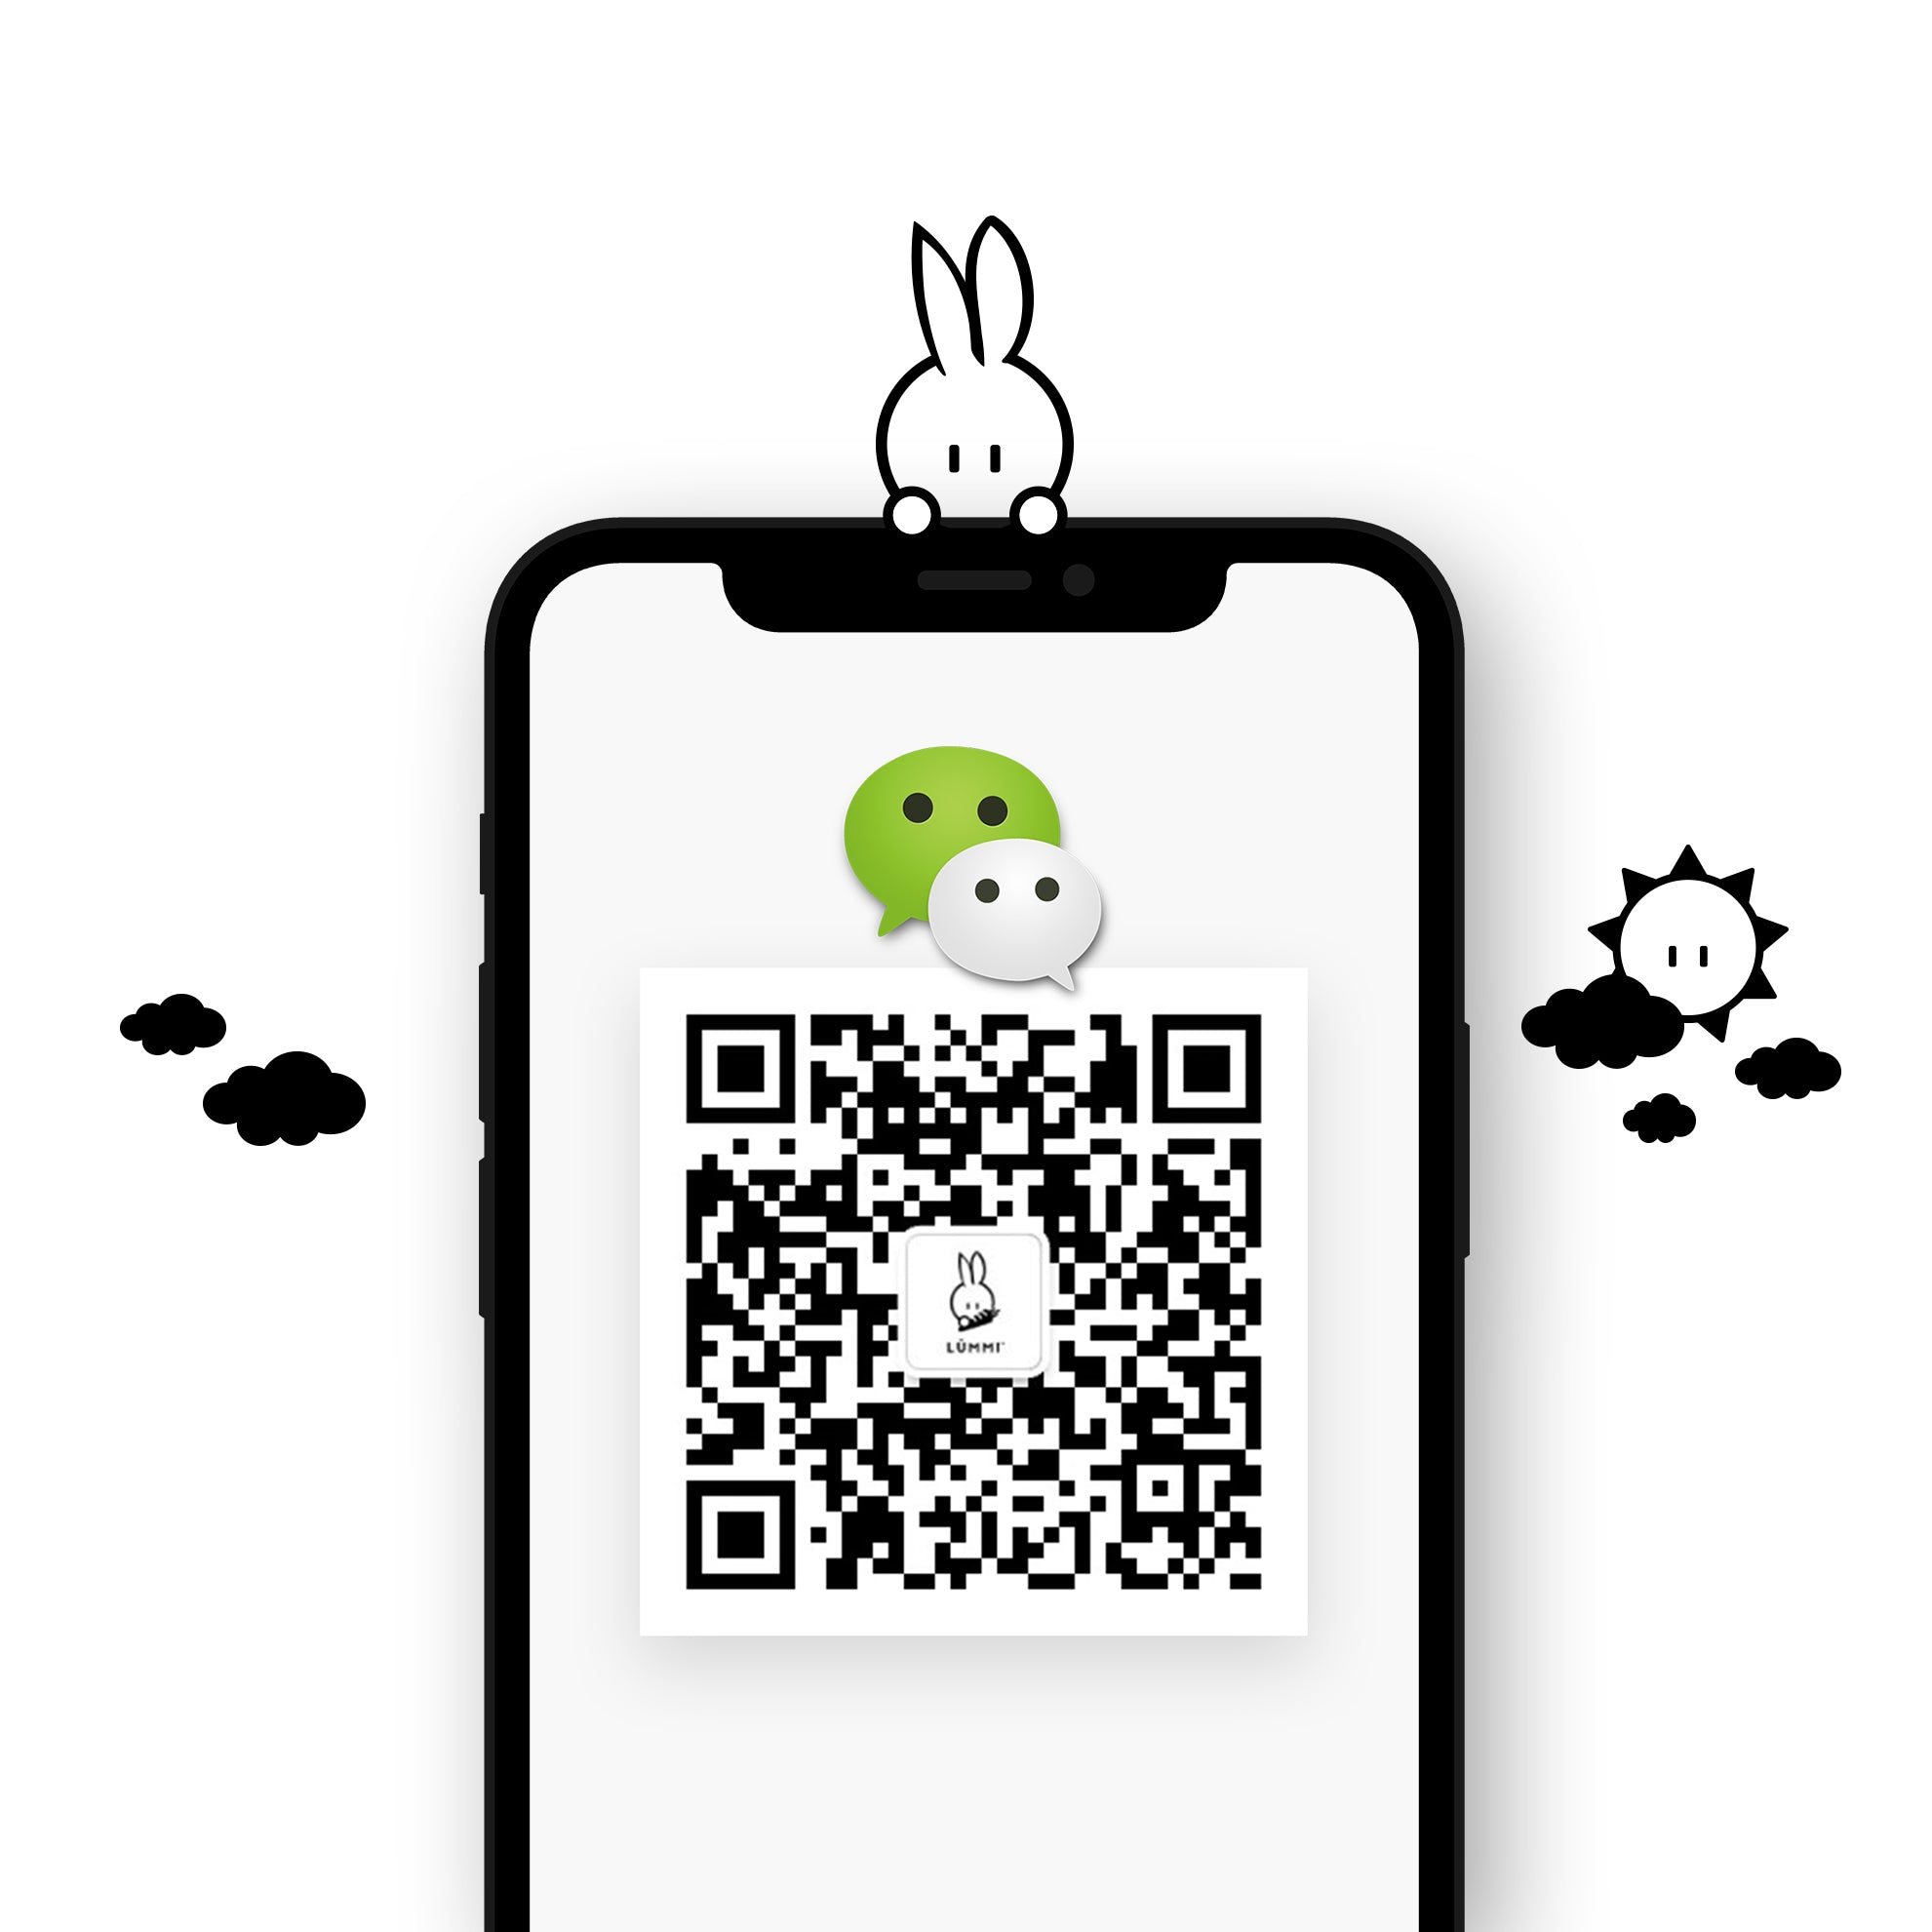 Hey! Lūmmi's now on WeChat